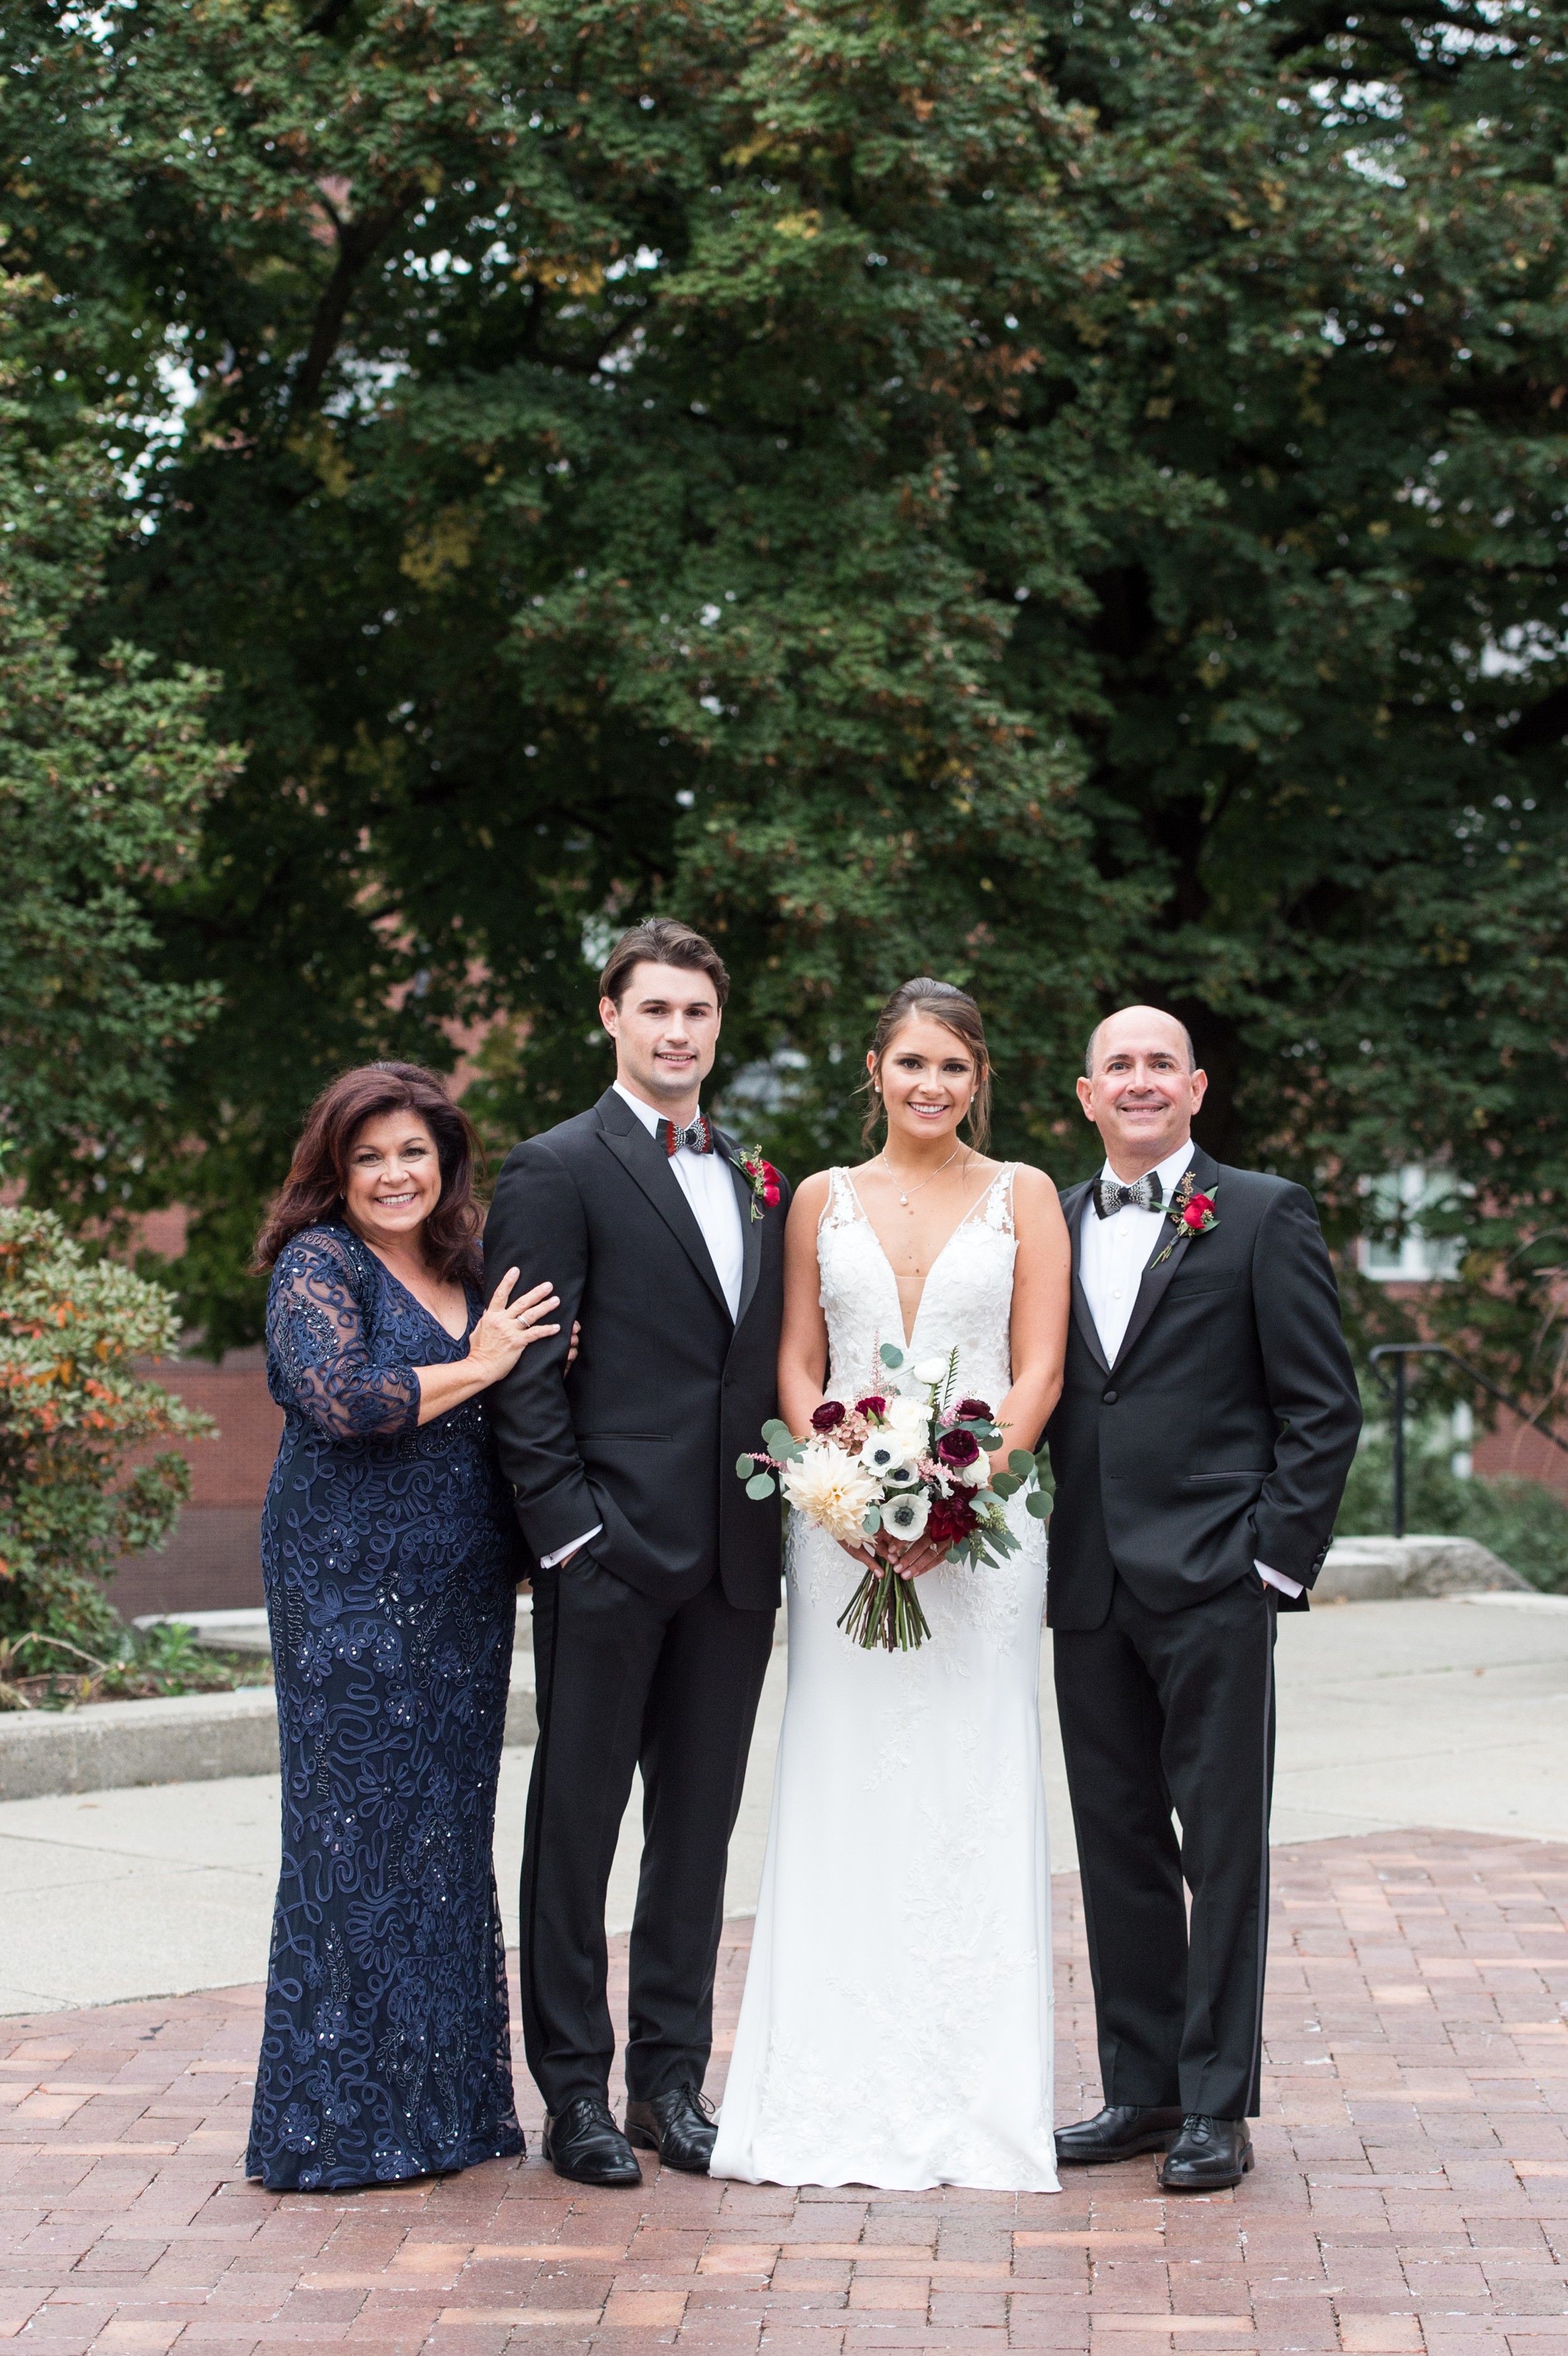 wedding planning family portraits made easy Holy Cross Wedding portrait of bride and groom with parents.jpg